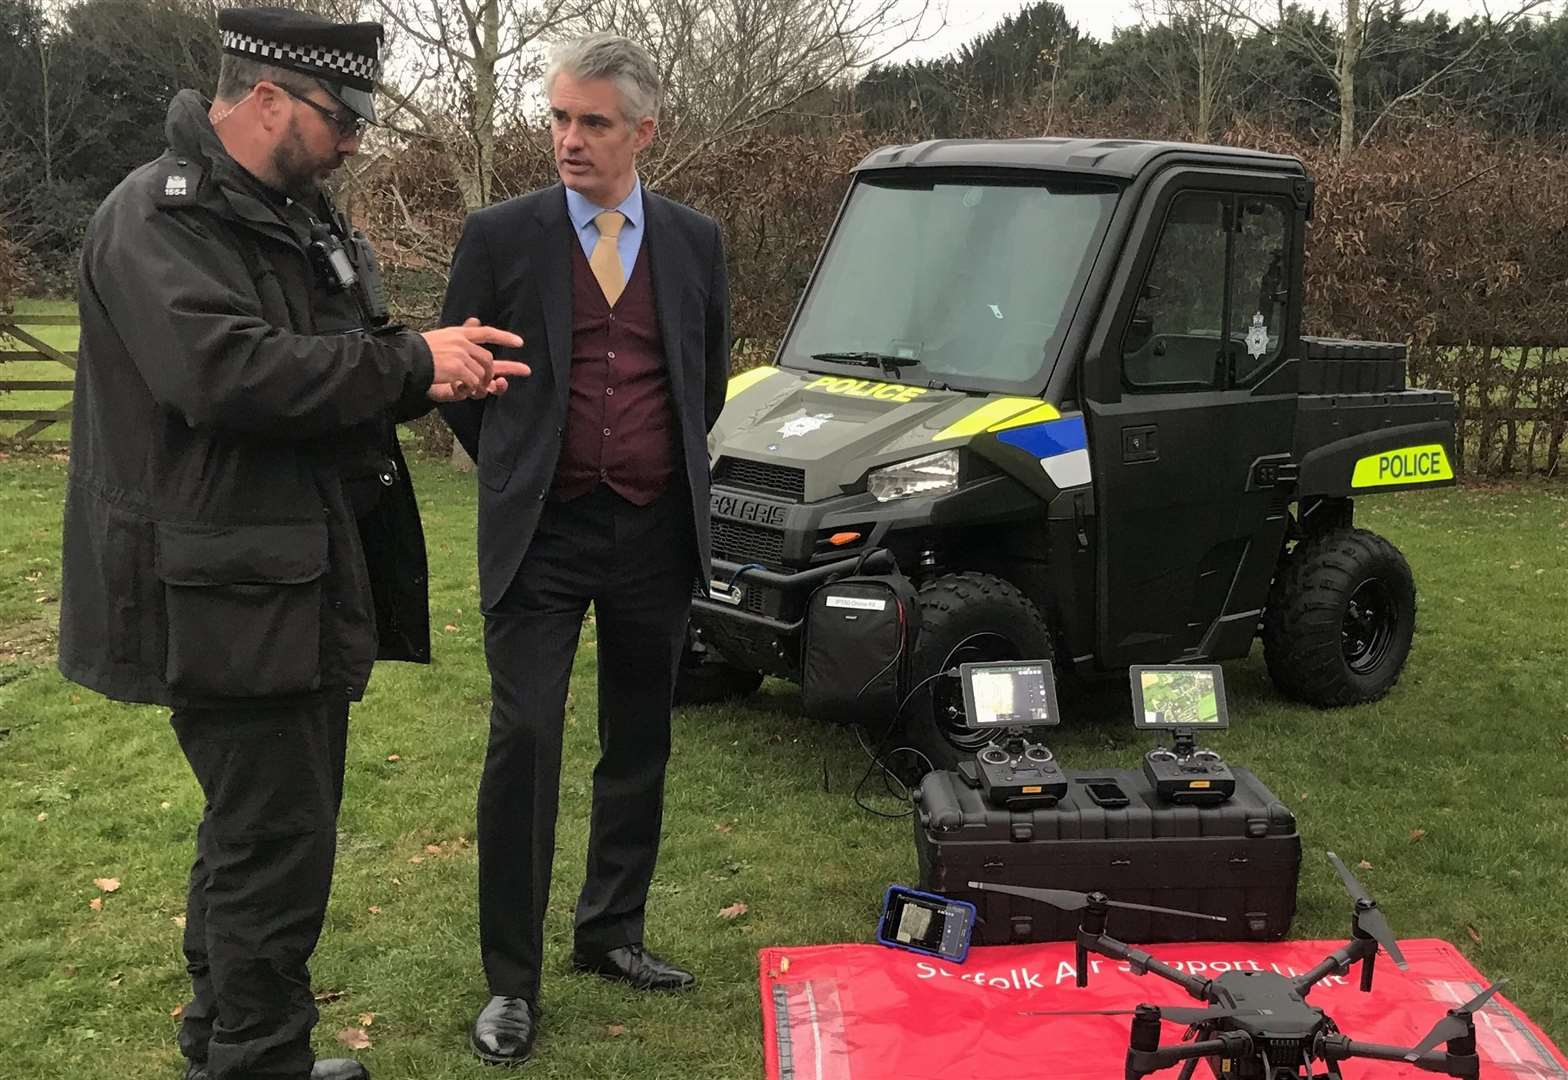 South Suffolk MP hails use of police drones to combat hare coursing